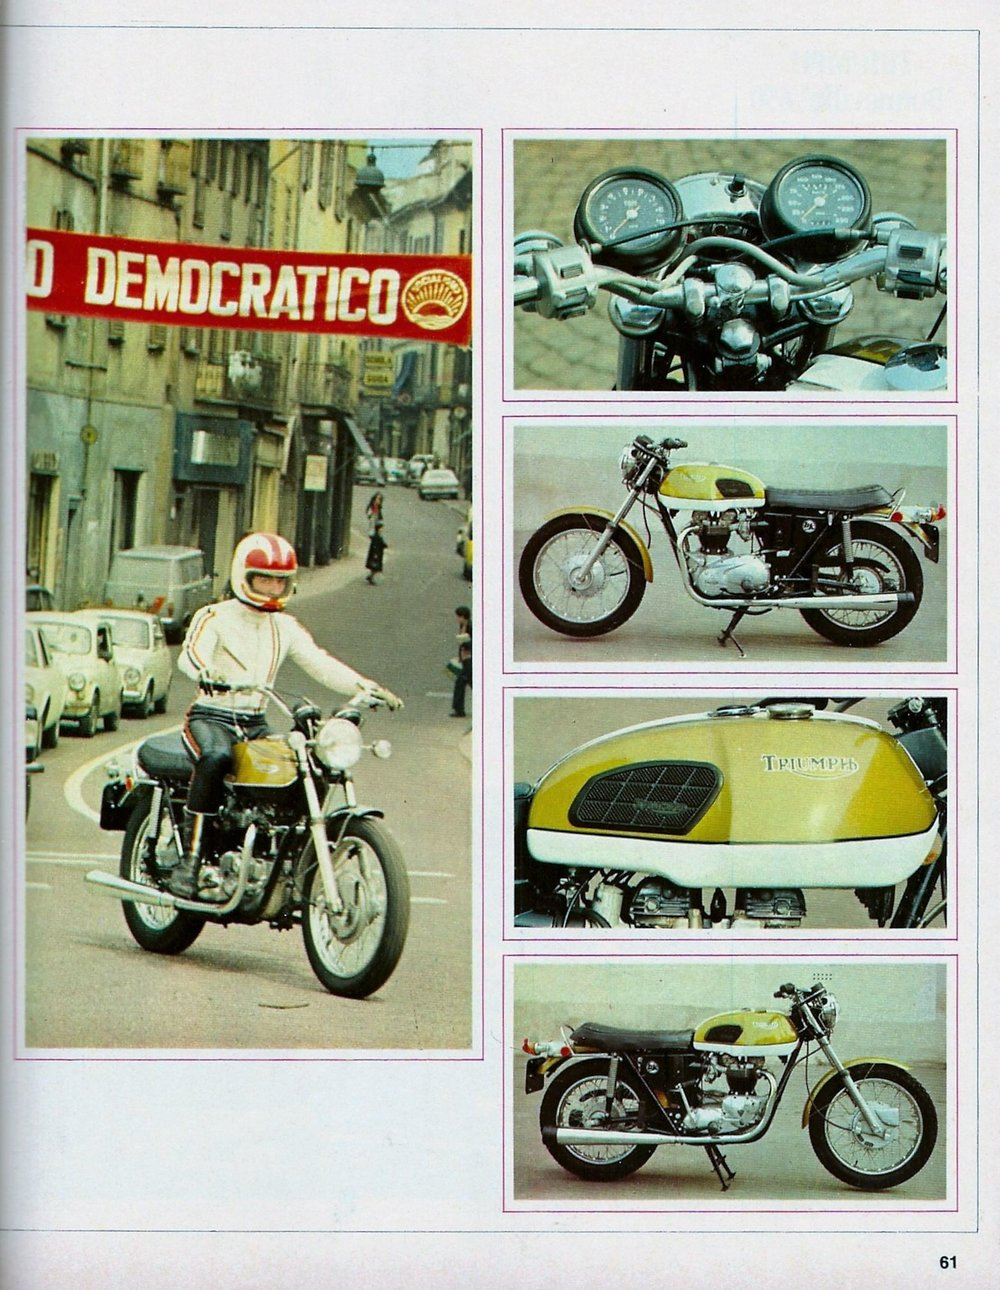 1972 Triumph Bonneville road test.4.jpg